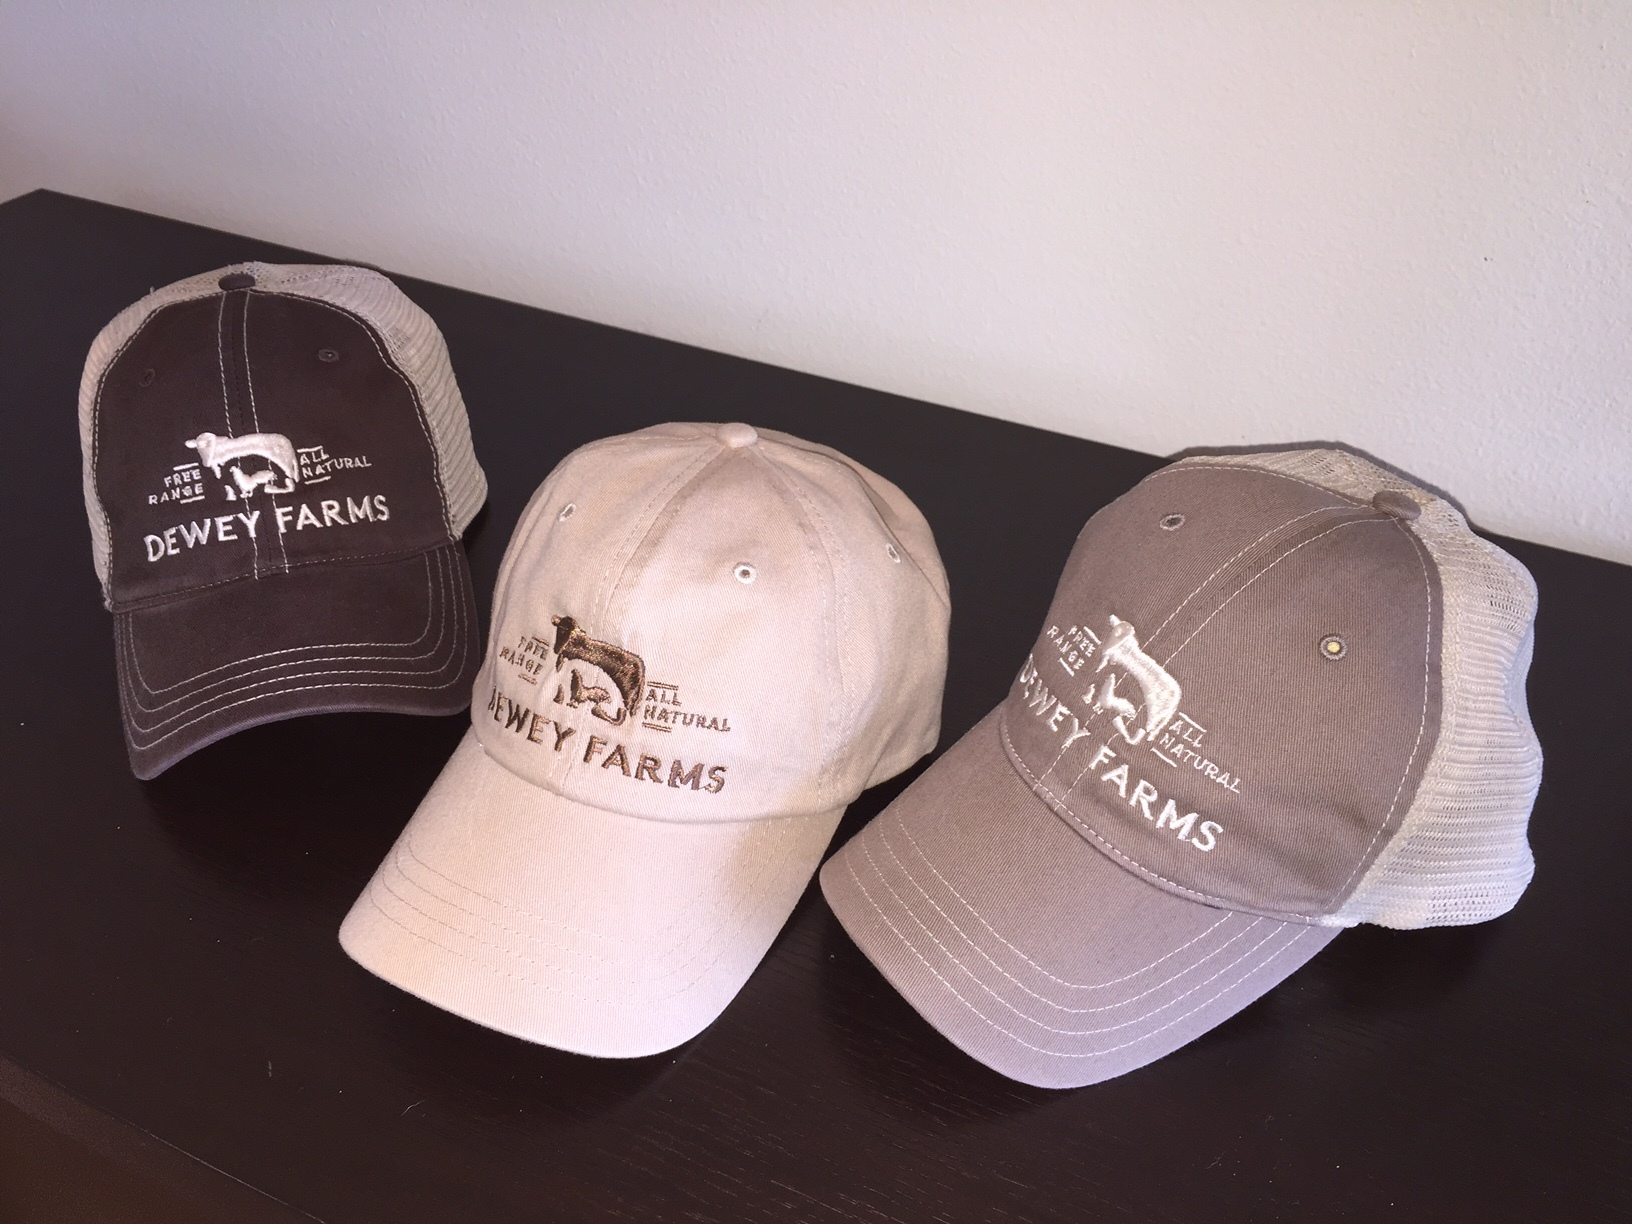 Dewey farms hats